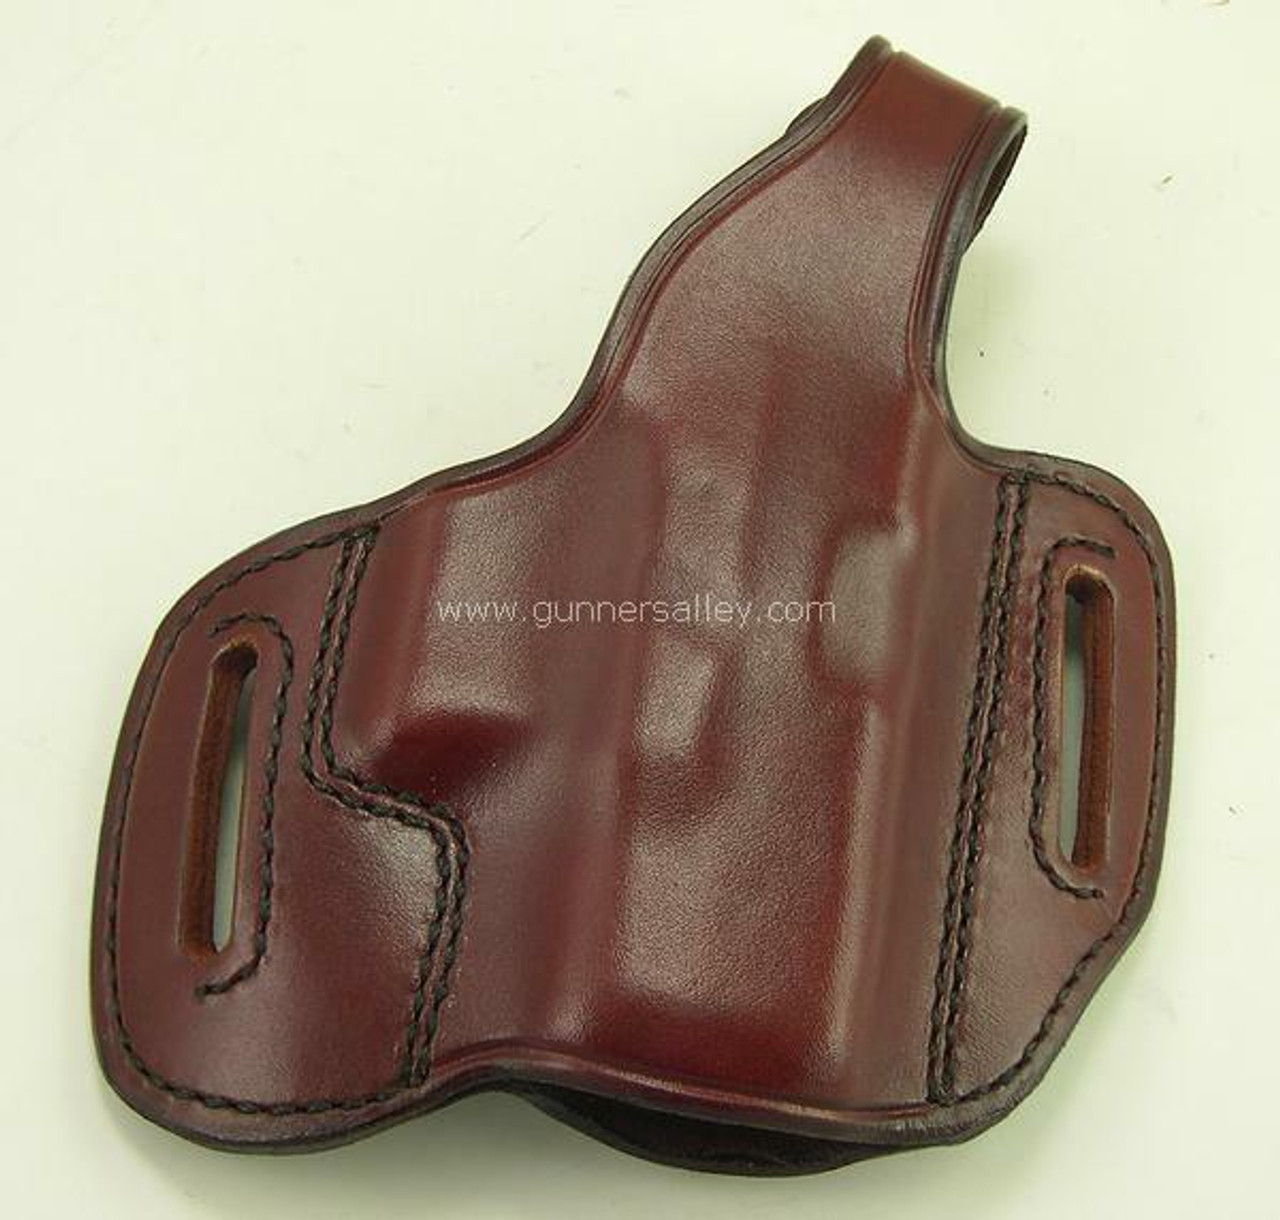 Shown in Saddle Brown for the Glock G26